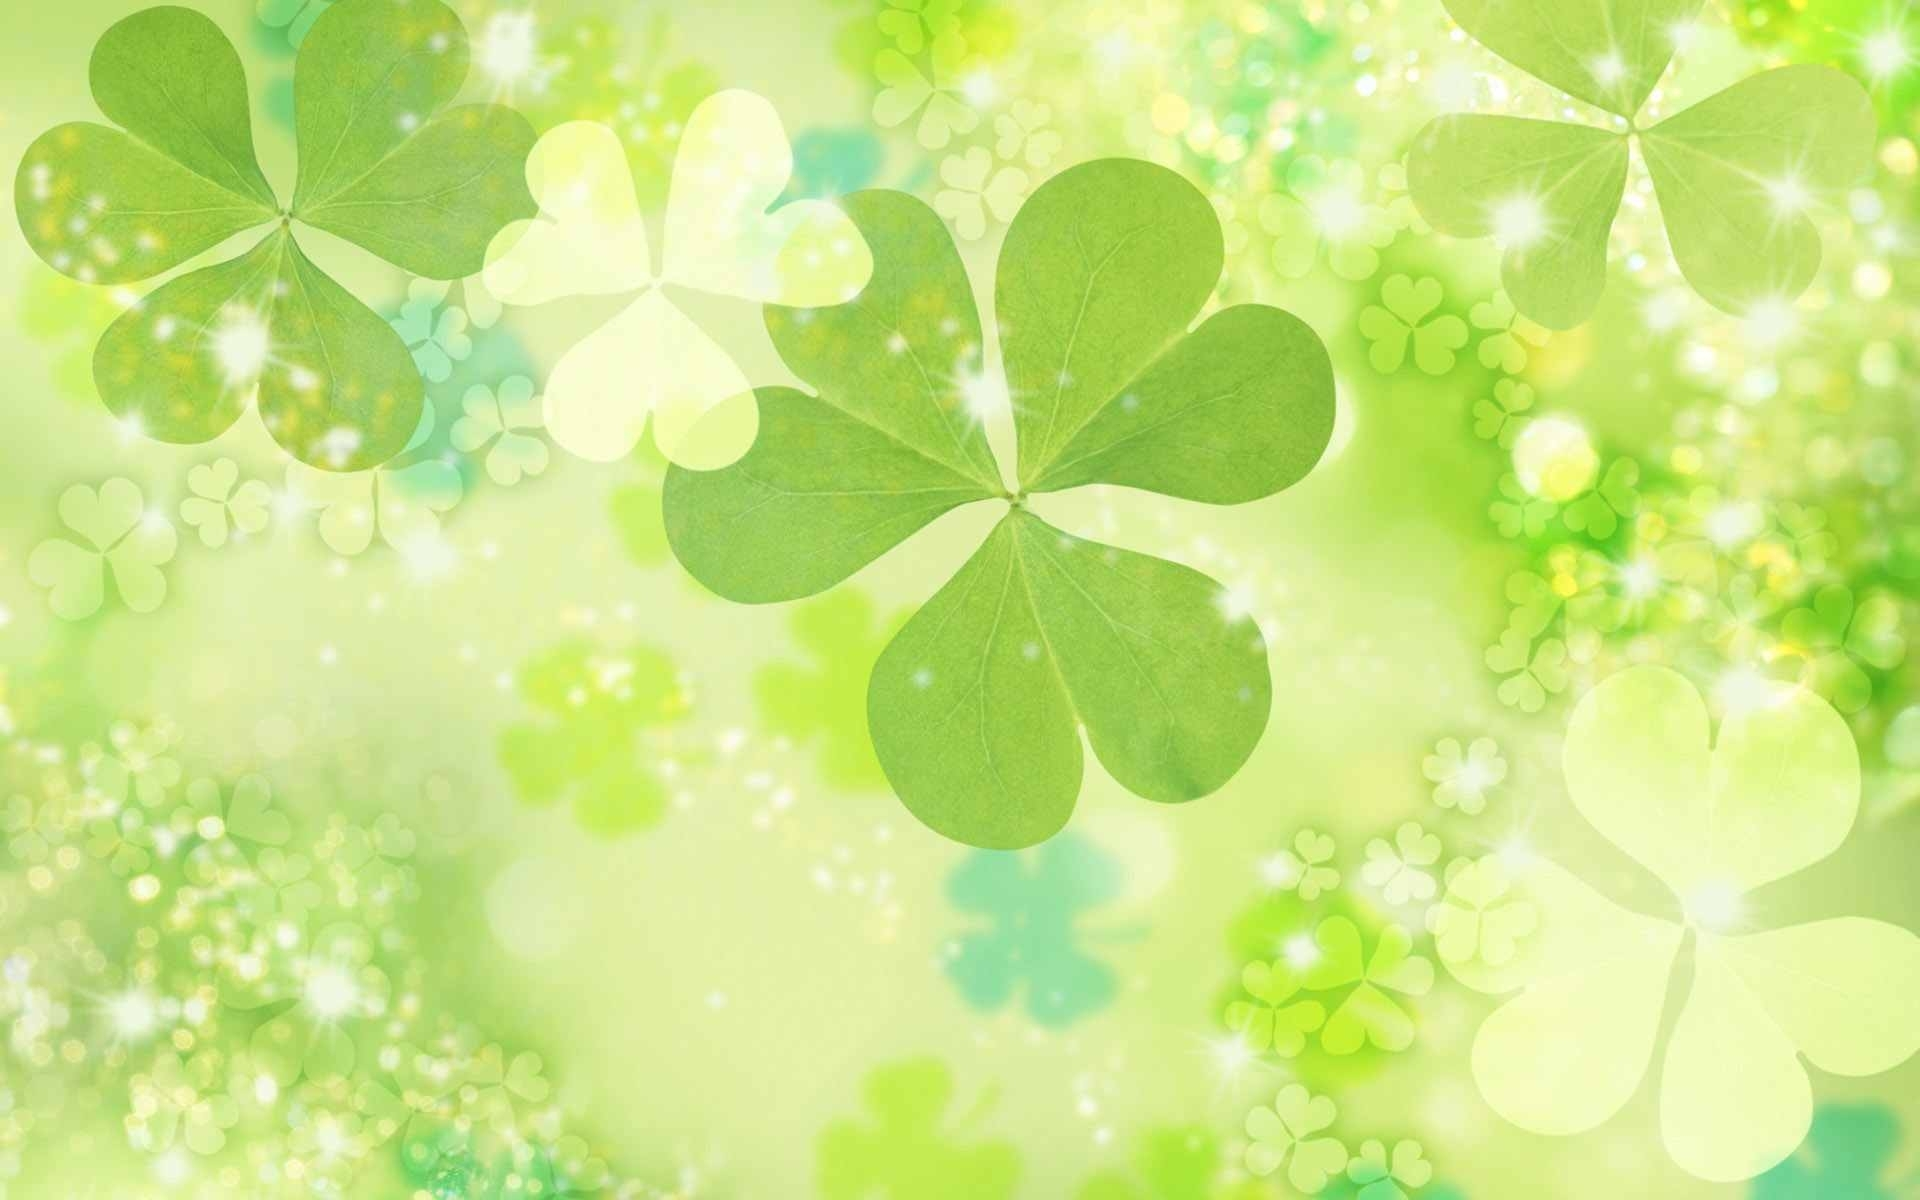 free st patricks day desktop wallpapers - wallpaper cave